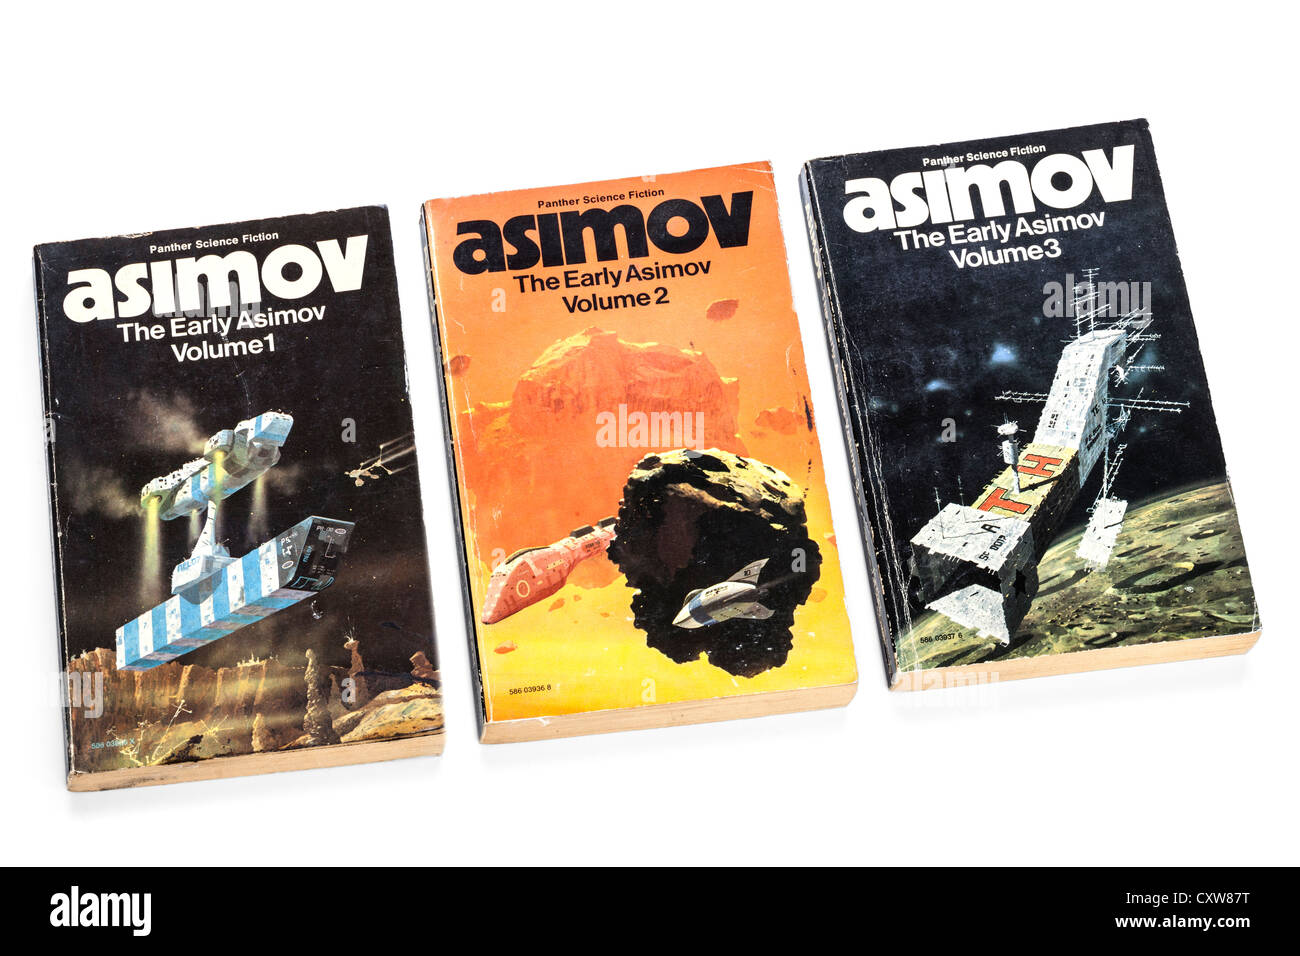 Paperback books from Panther Science fiction, Asimov, The Early Asimov, volumes 1,2,3, - Stock Image